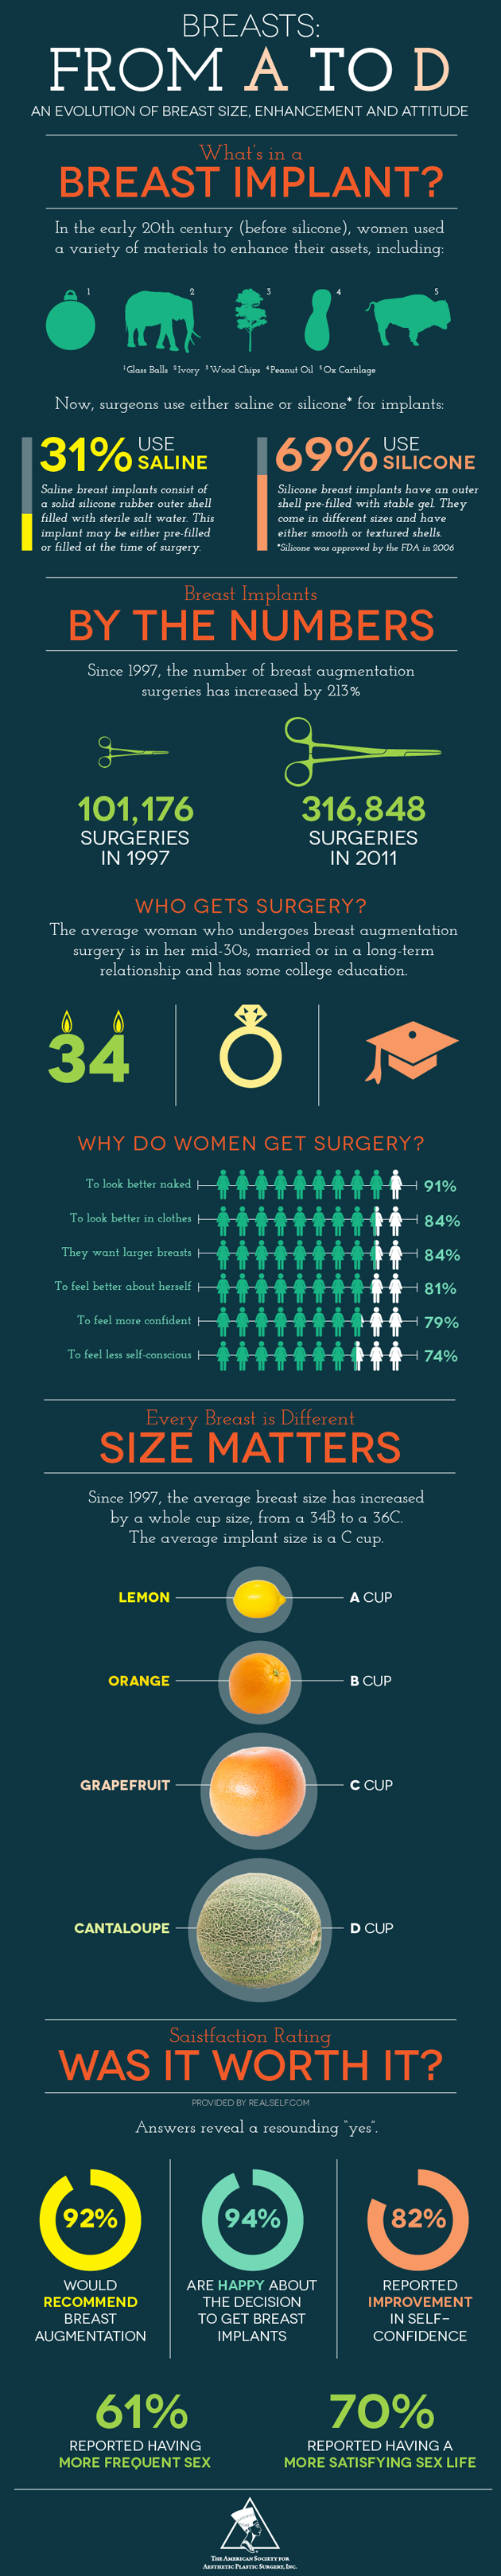 Breast Implants Facts